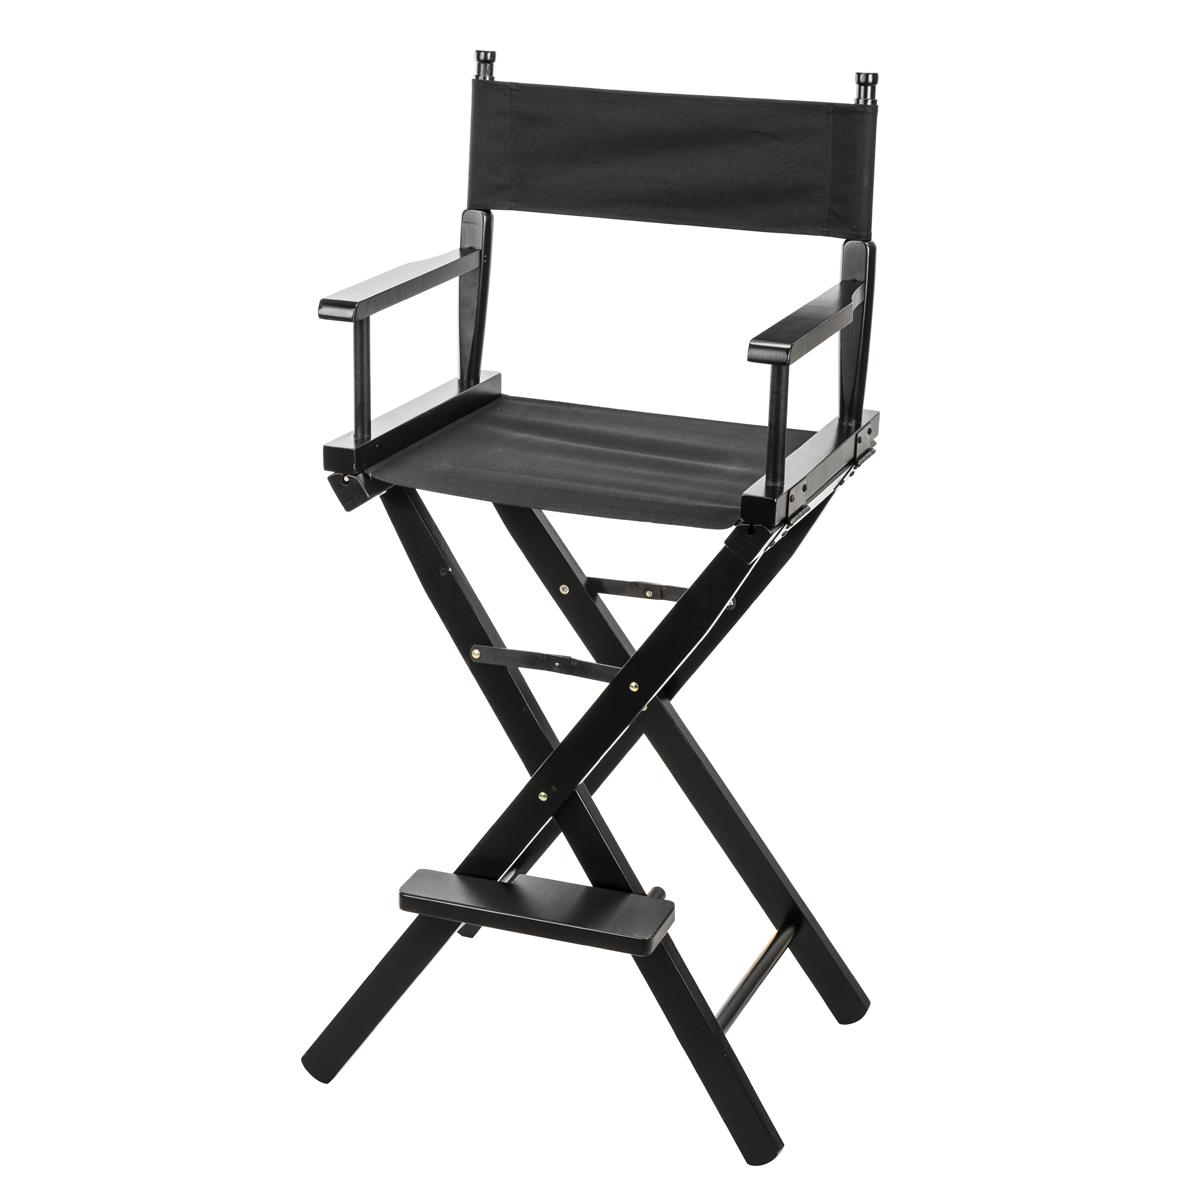 Black Directors Chair Clar Dc 30 Film Director S Chair Black Wood With Black Seat